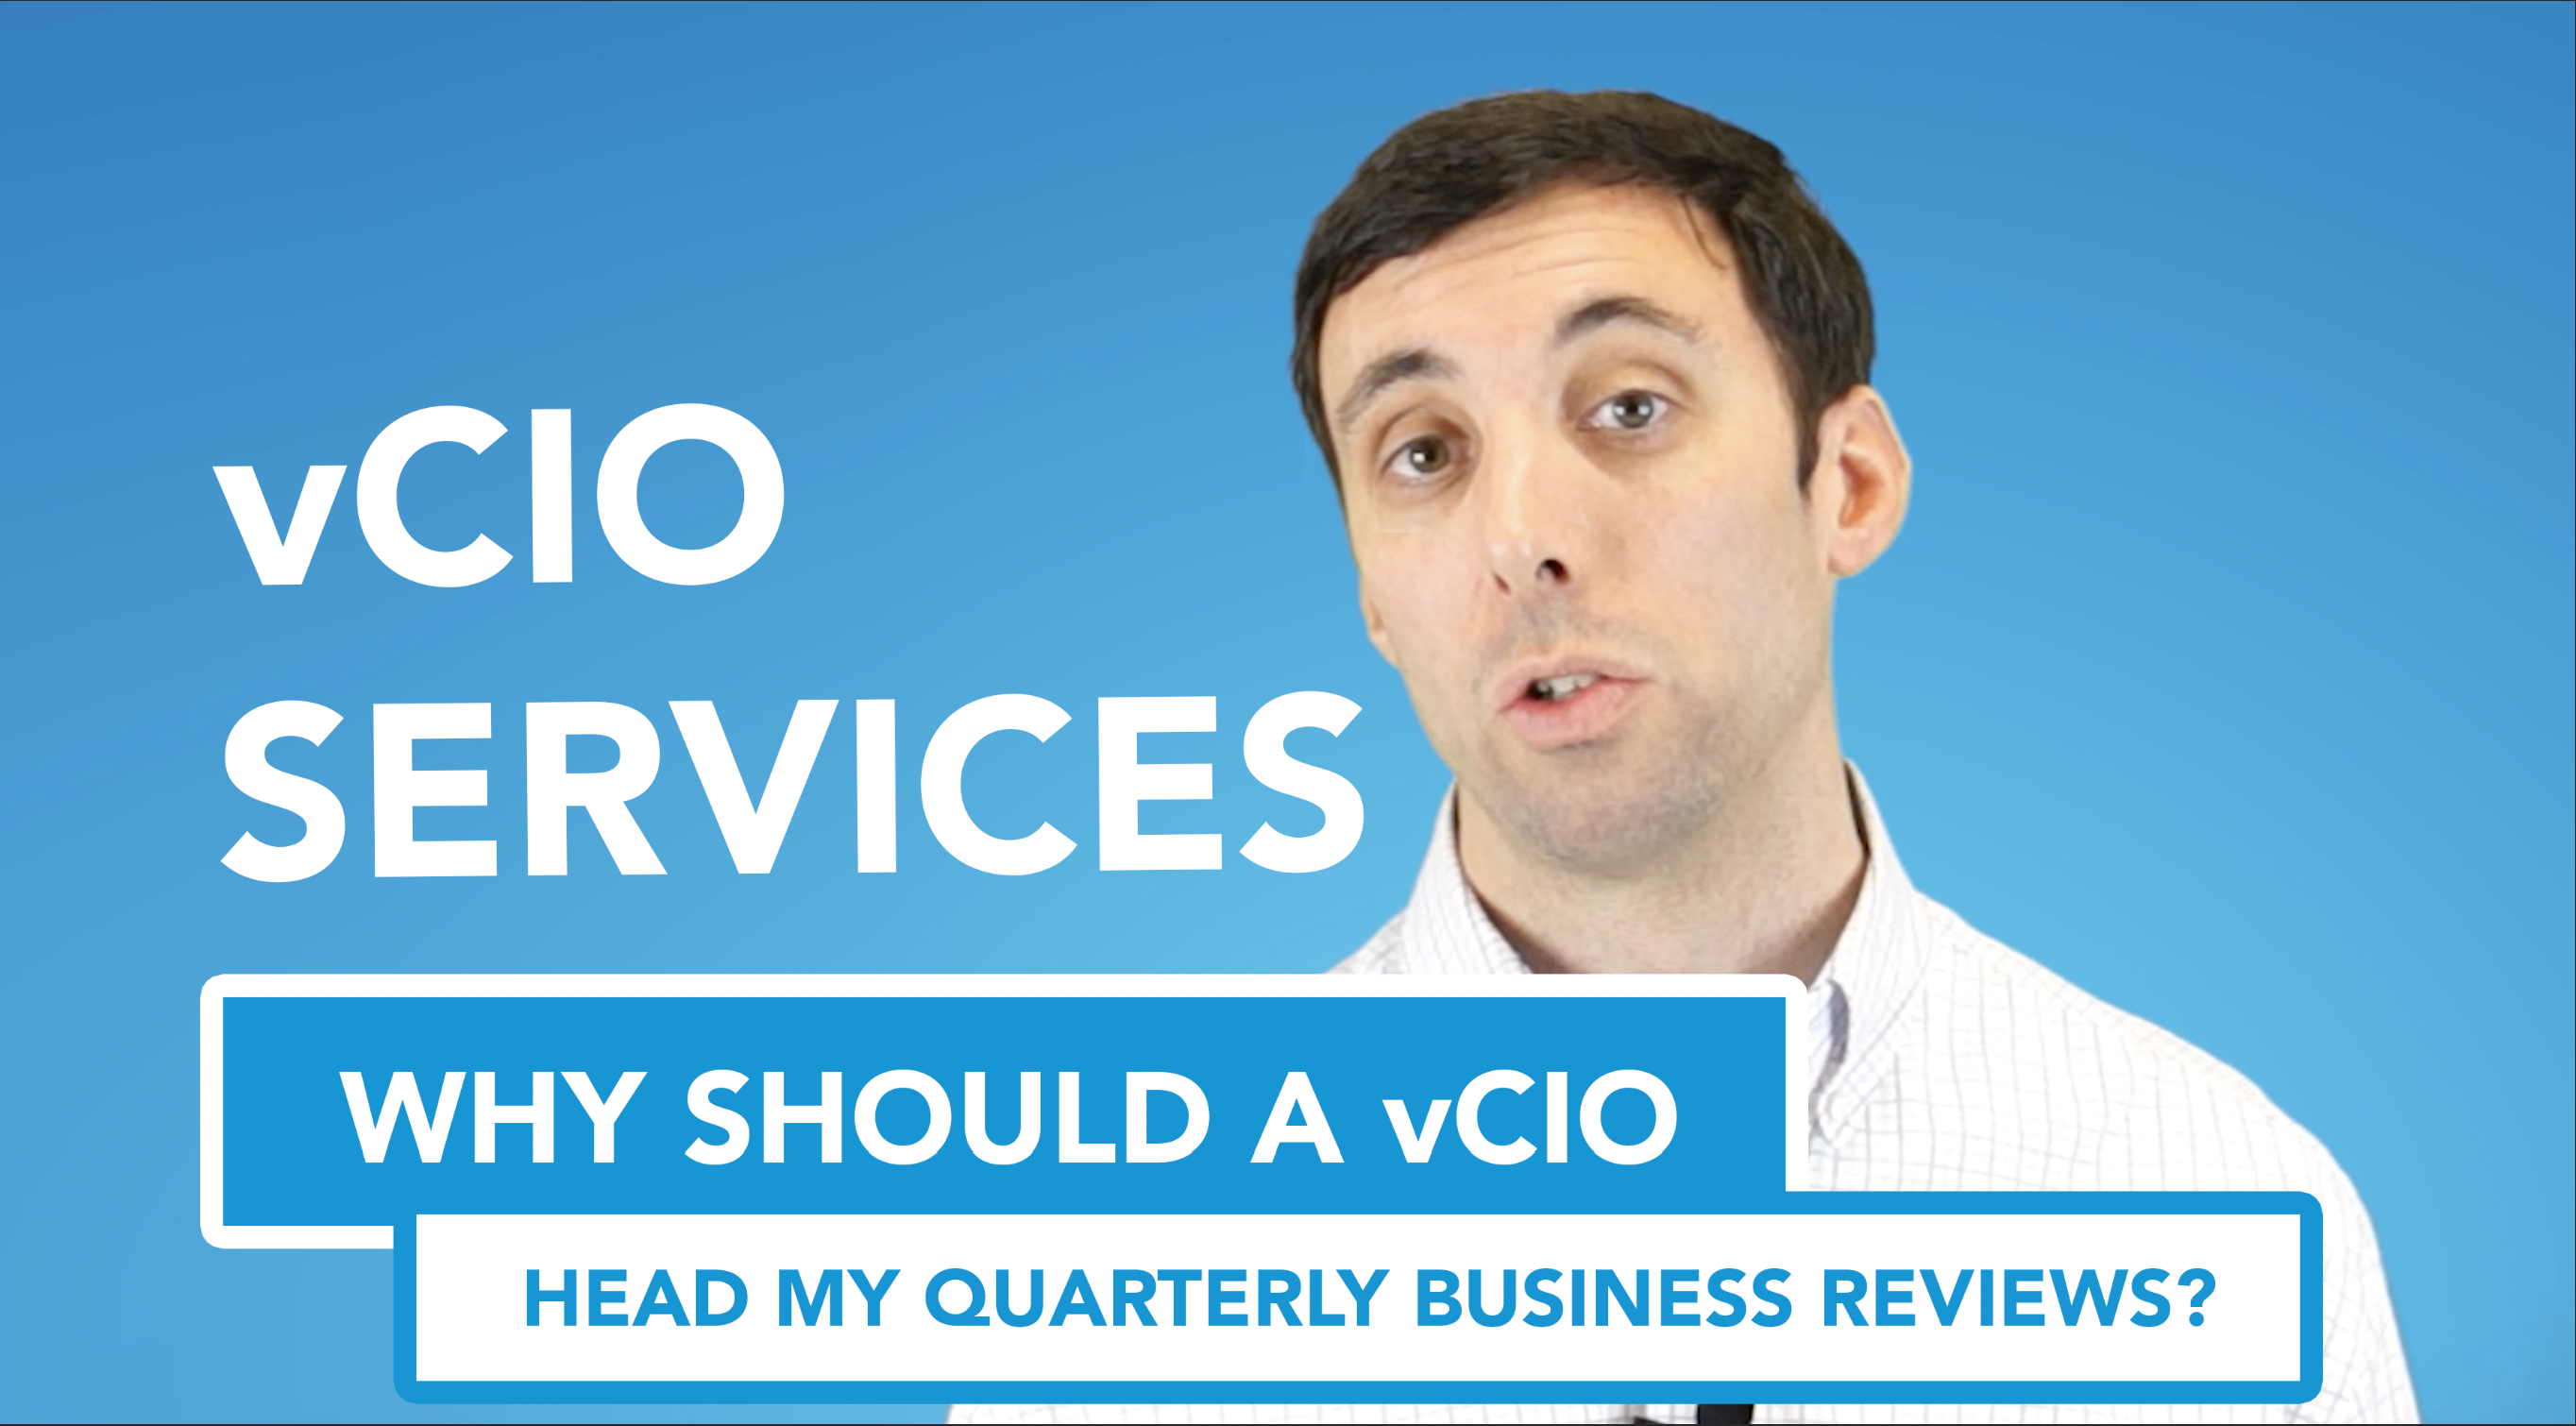 vCIO Services: Why should a vCIO head my quarterly business review?